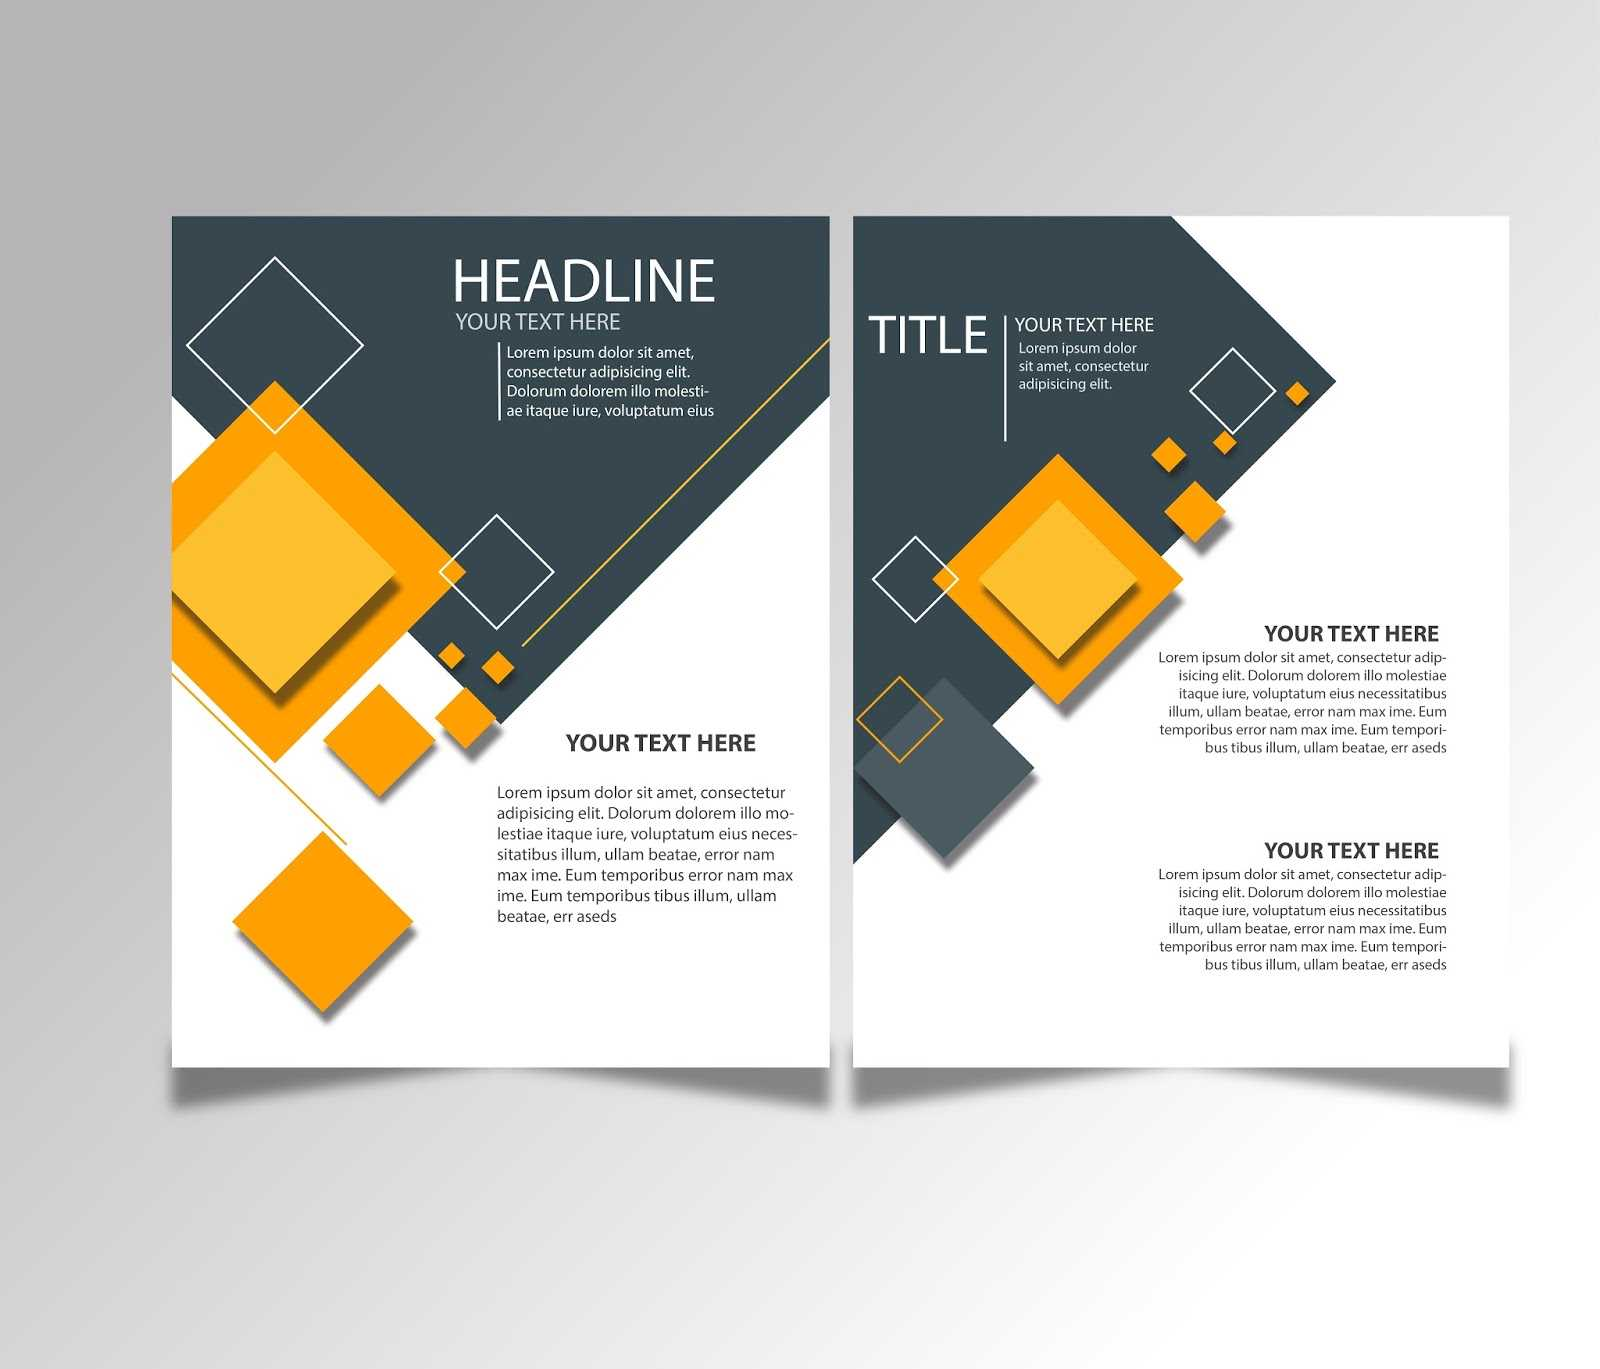 Free Download Brochure Design Templates Ai Files - Ideosprocess Intended For Creative Brochure Templates Free Download